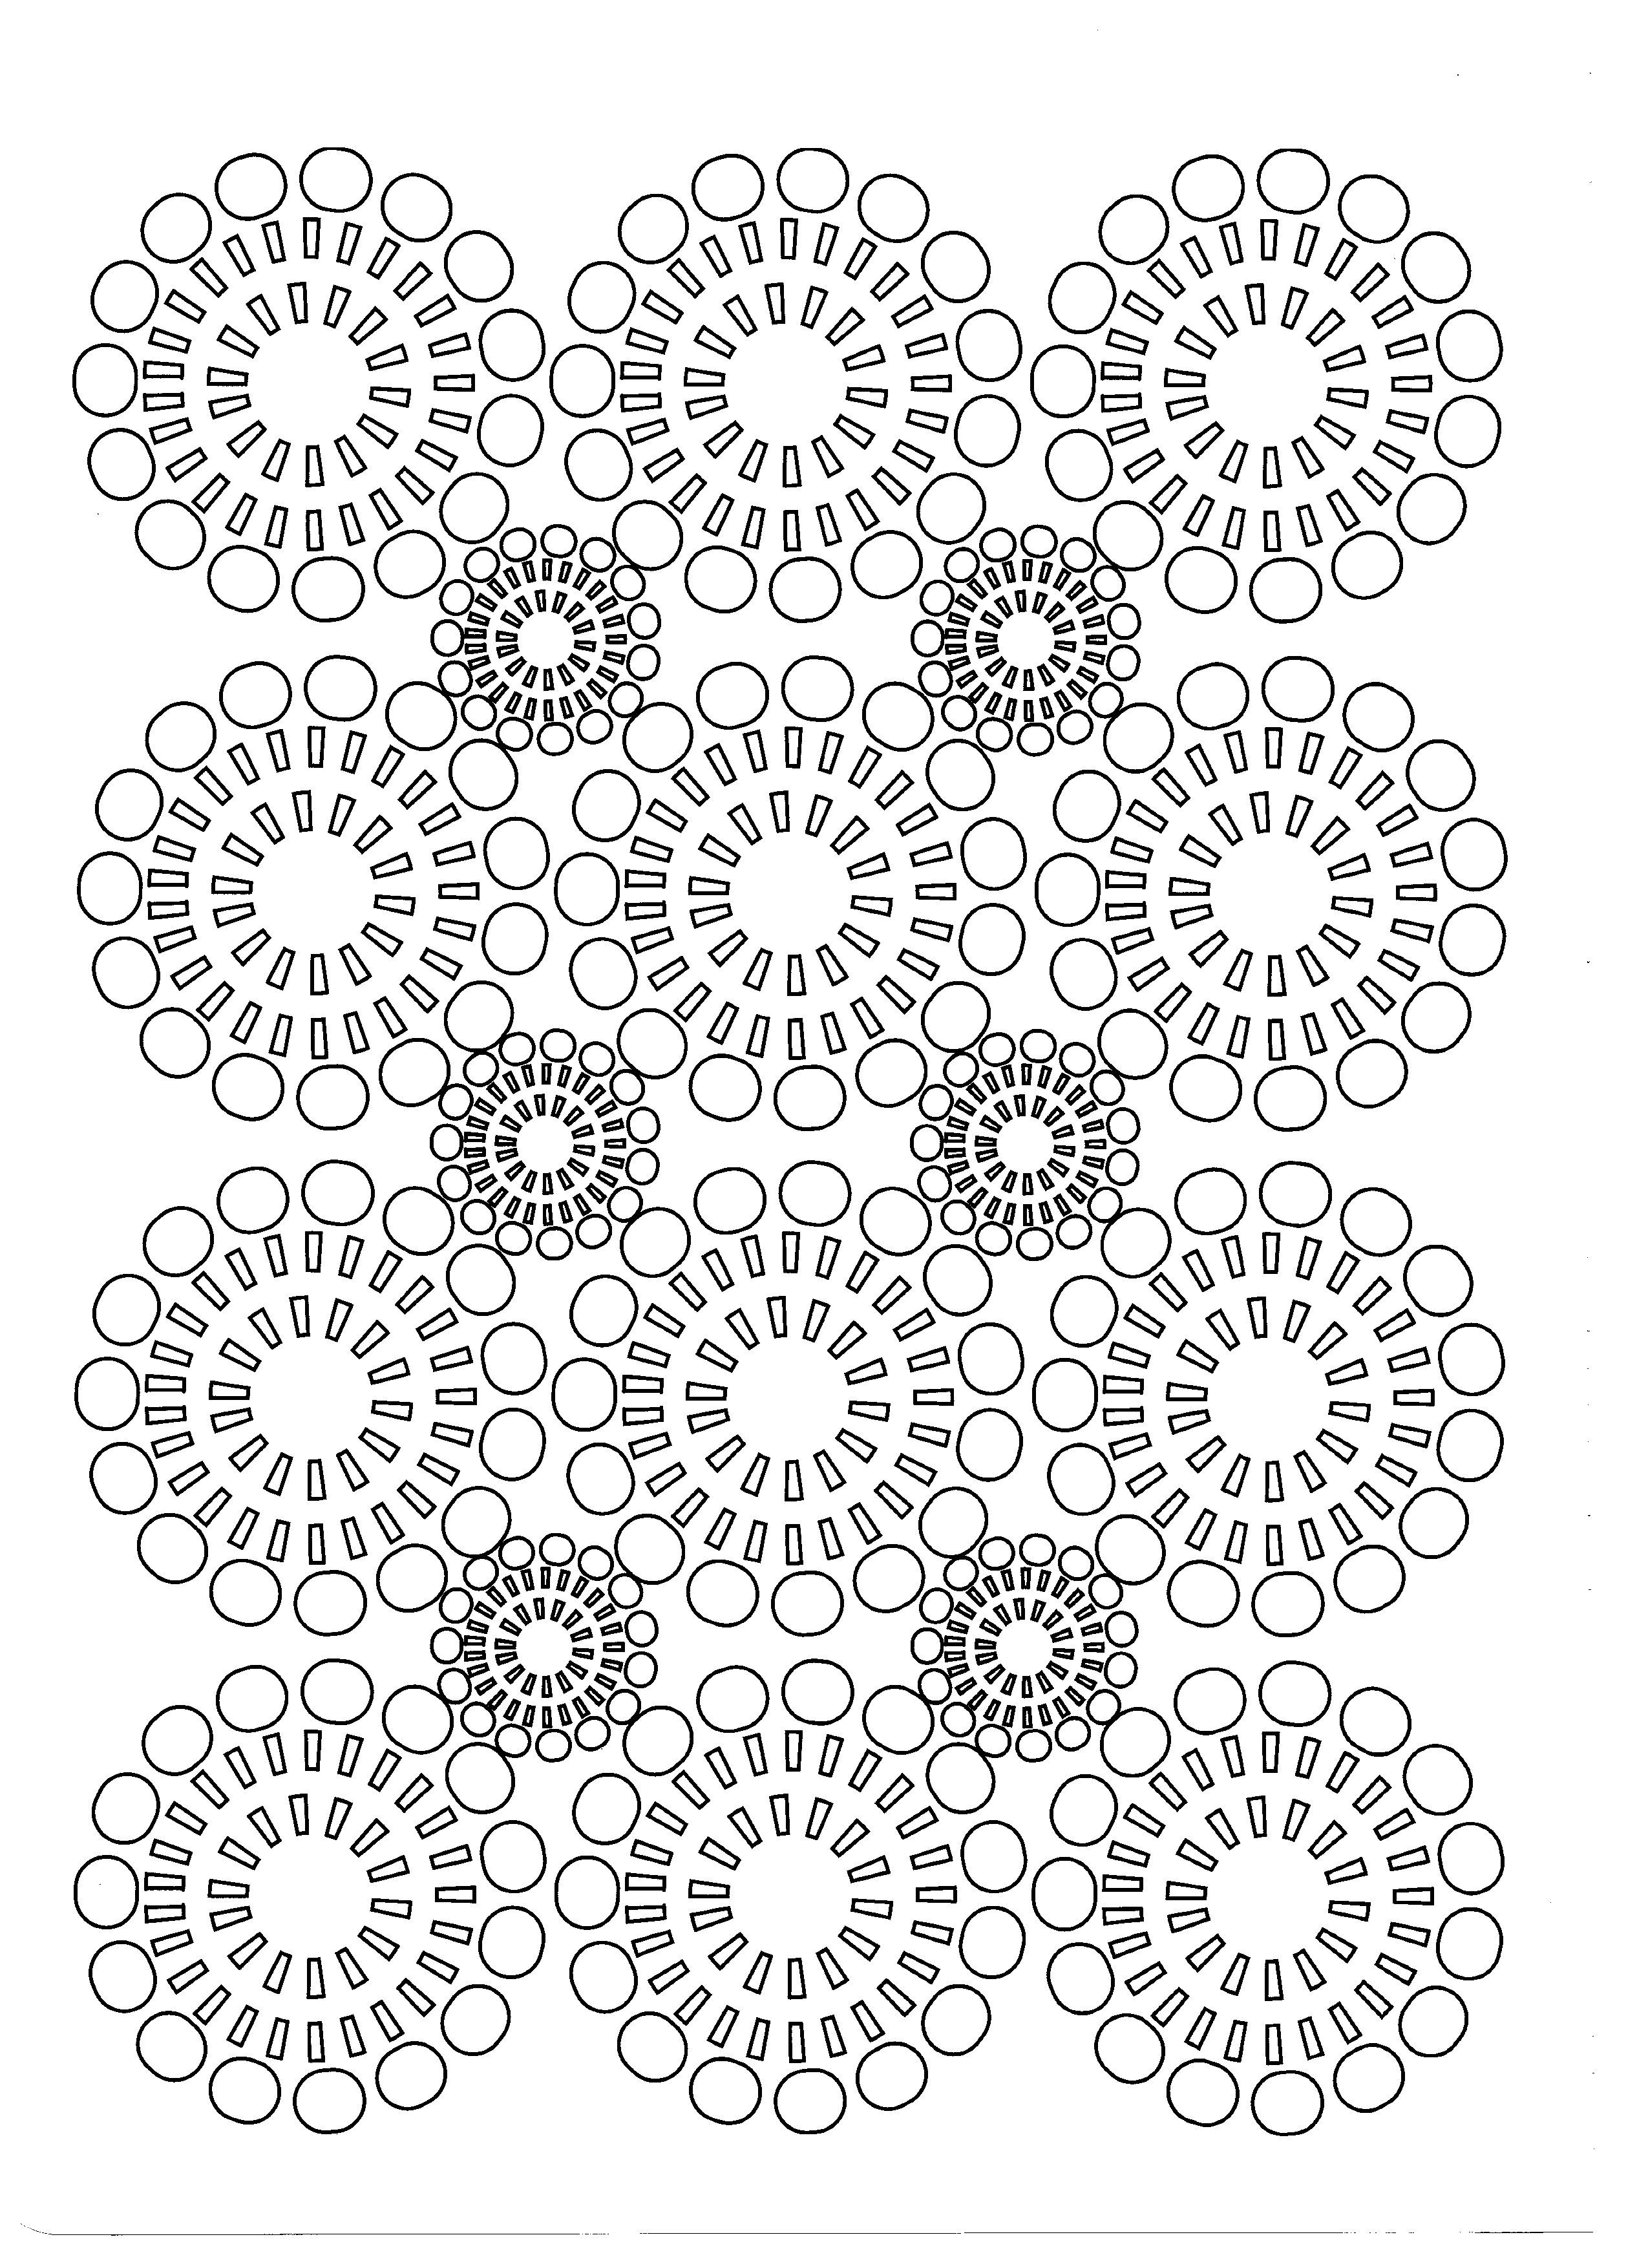 Circles Flowers Flowers Vegetation Coloring Pages For Adults Just Color Page 2 Flower Coloring Pages Coloring Pages Cool Coloring Pages